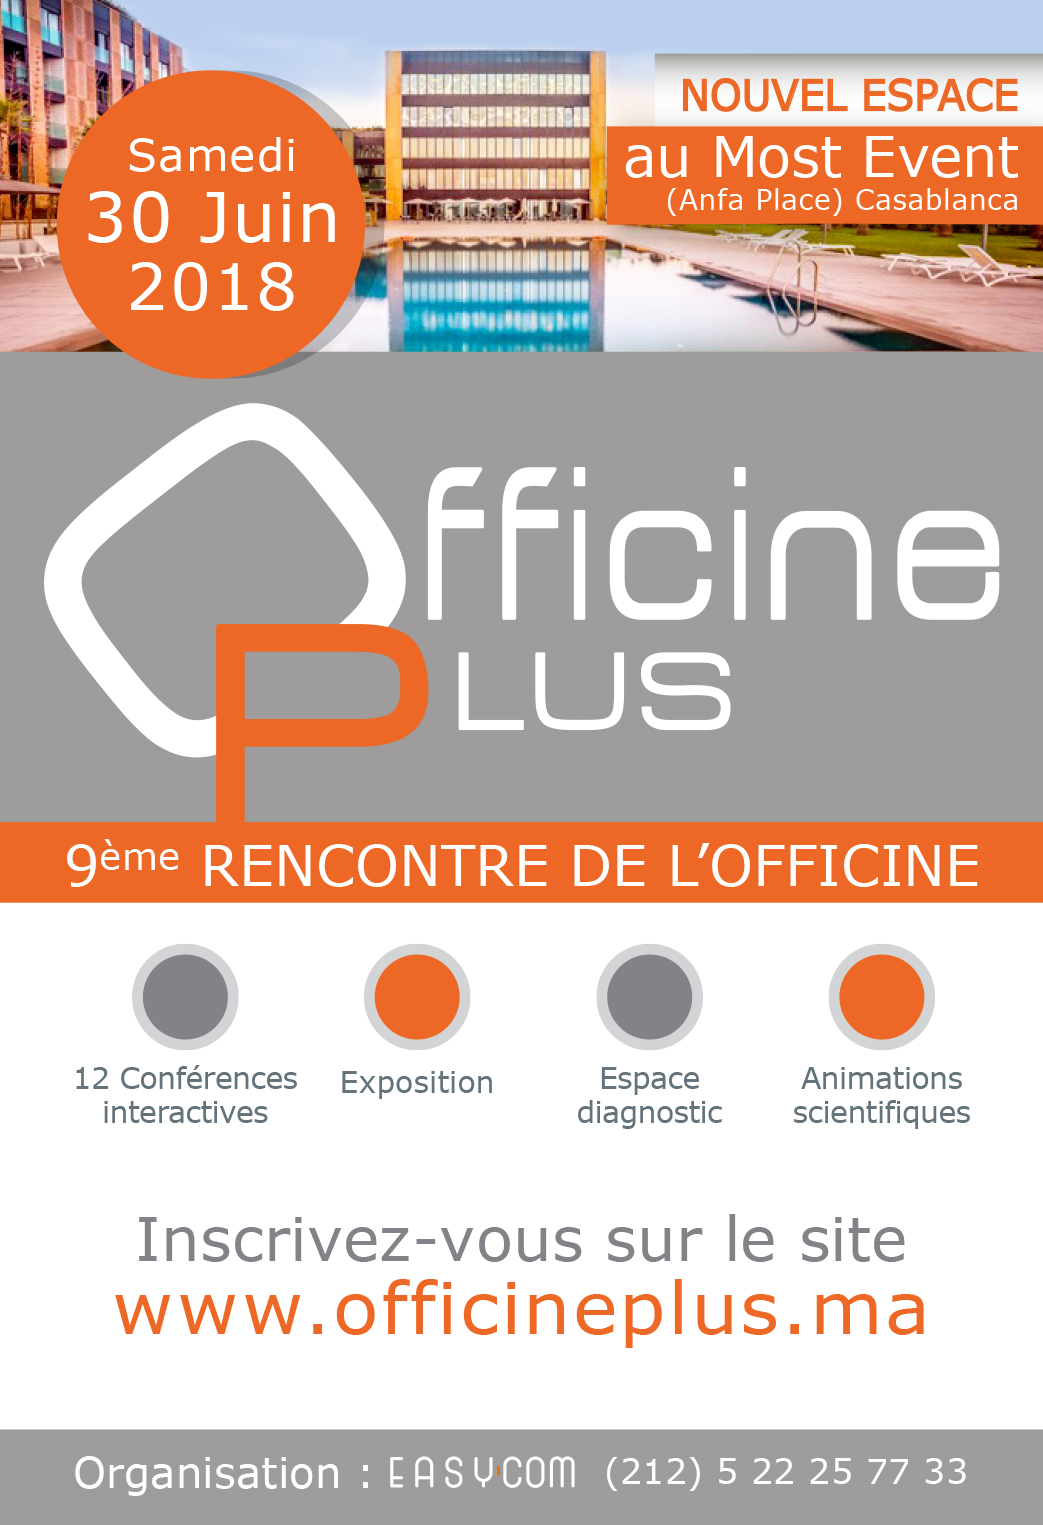 Officineplus